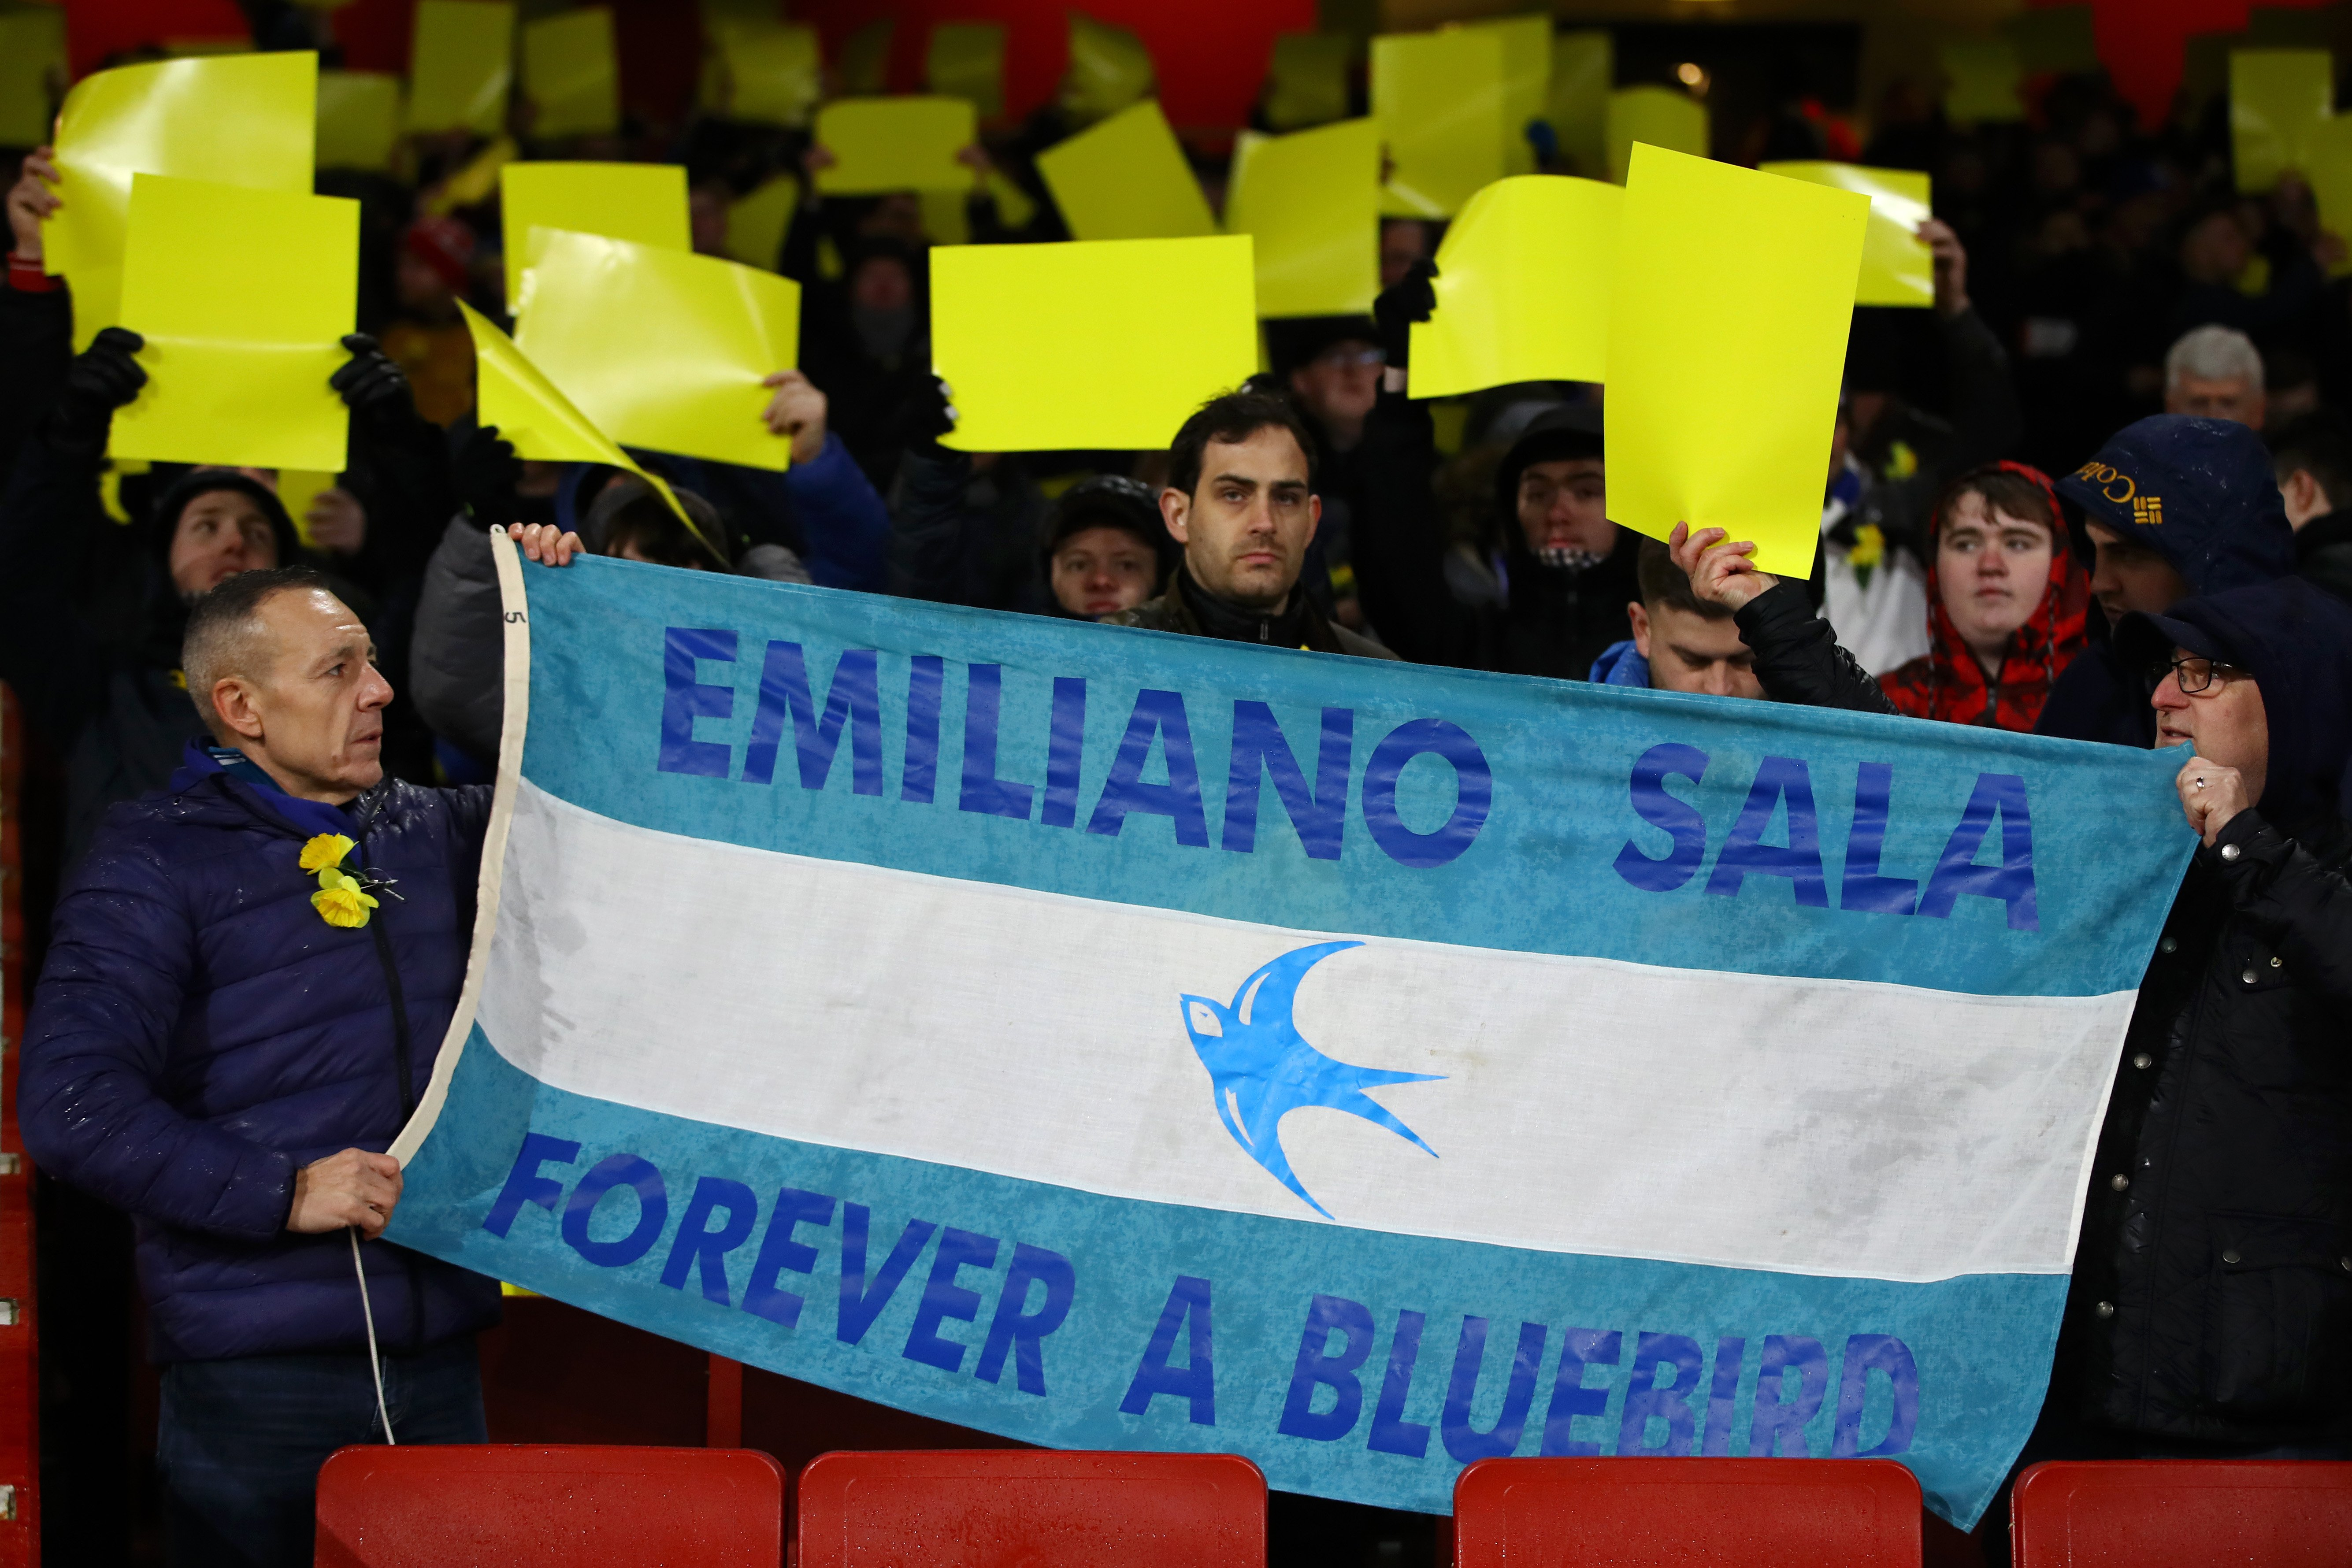 LONDON, ENGLAND - JANUARY 29: Fans pay tribute to Emiliano Sala prior to the Premier League match between Arsenal and Cardiff City at Emirates Stadium on January 29, 2019 in London, United Kingdom. (Photo by Dan Istitene/Getty Images)